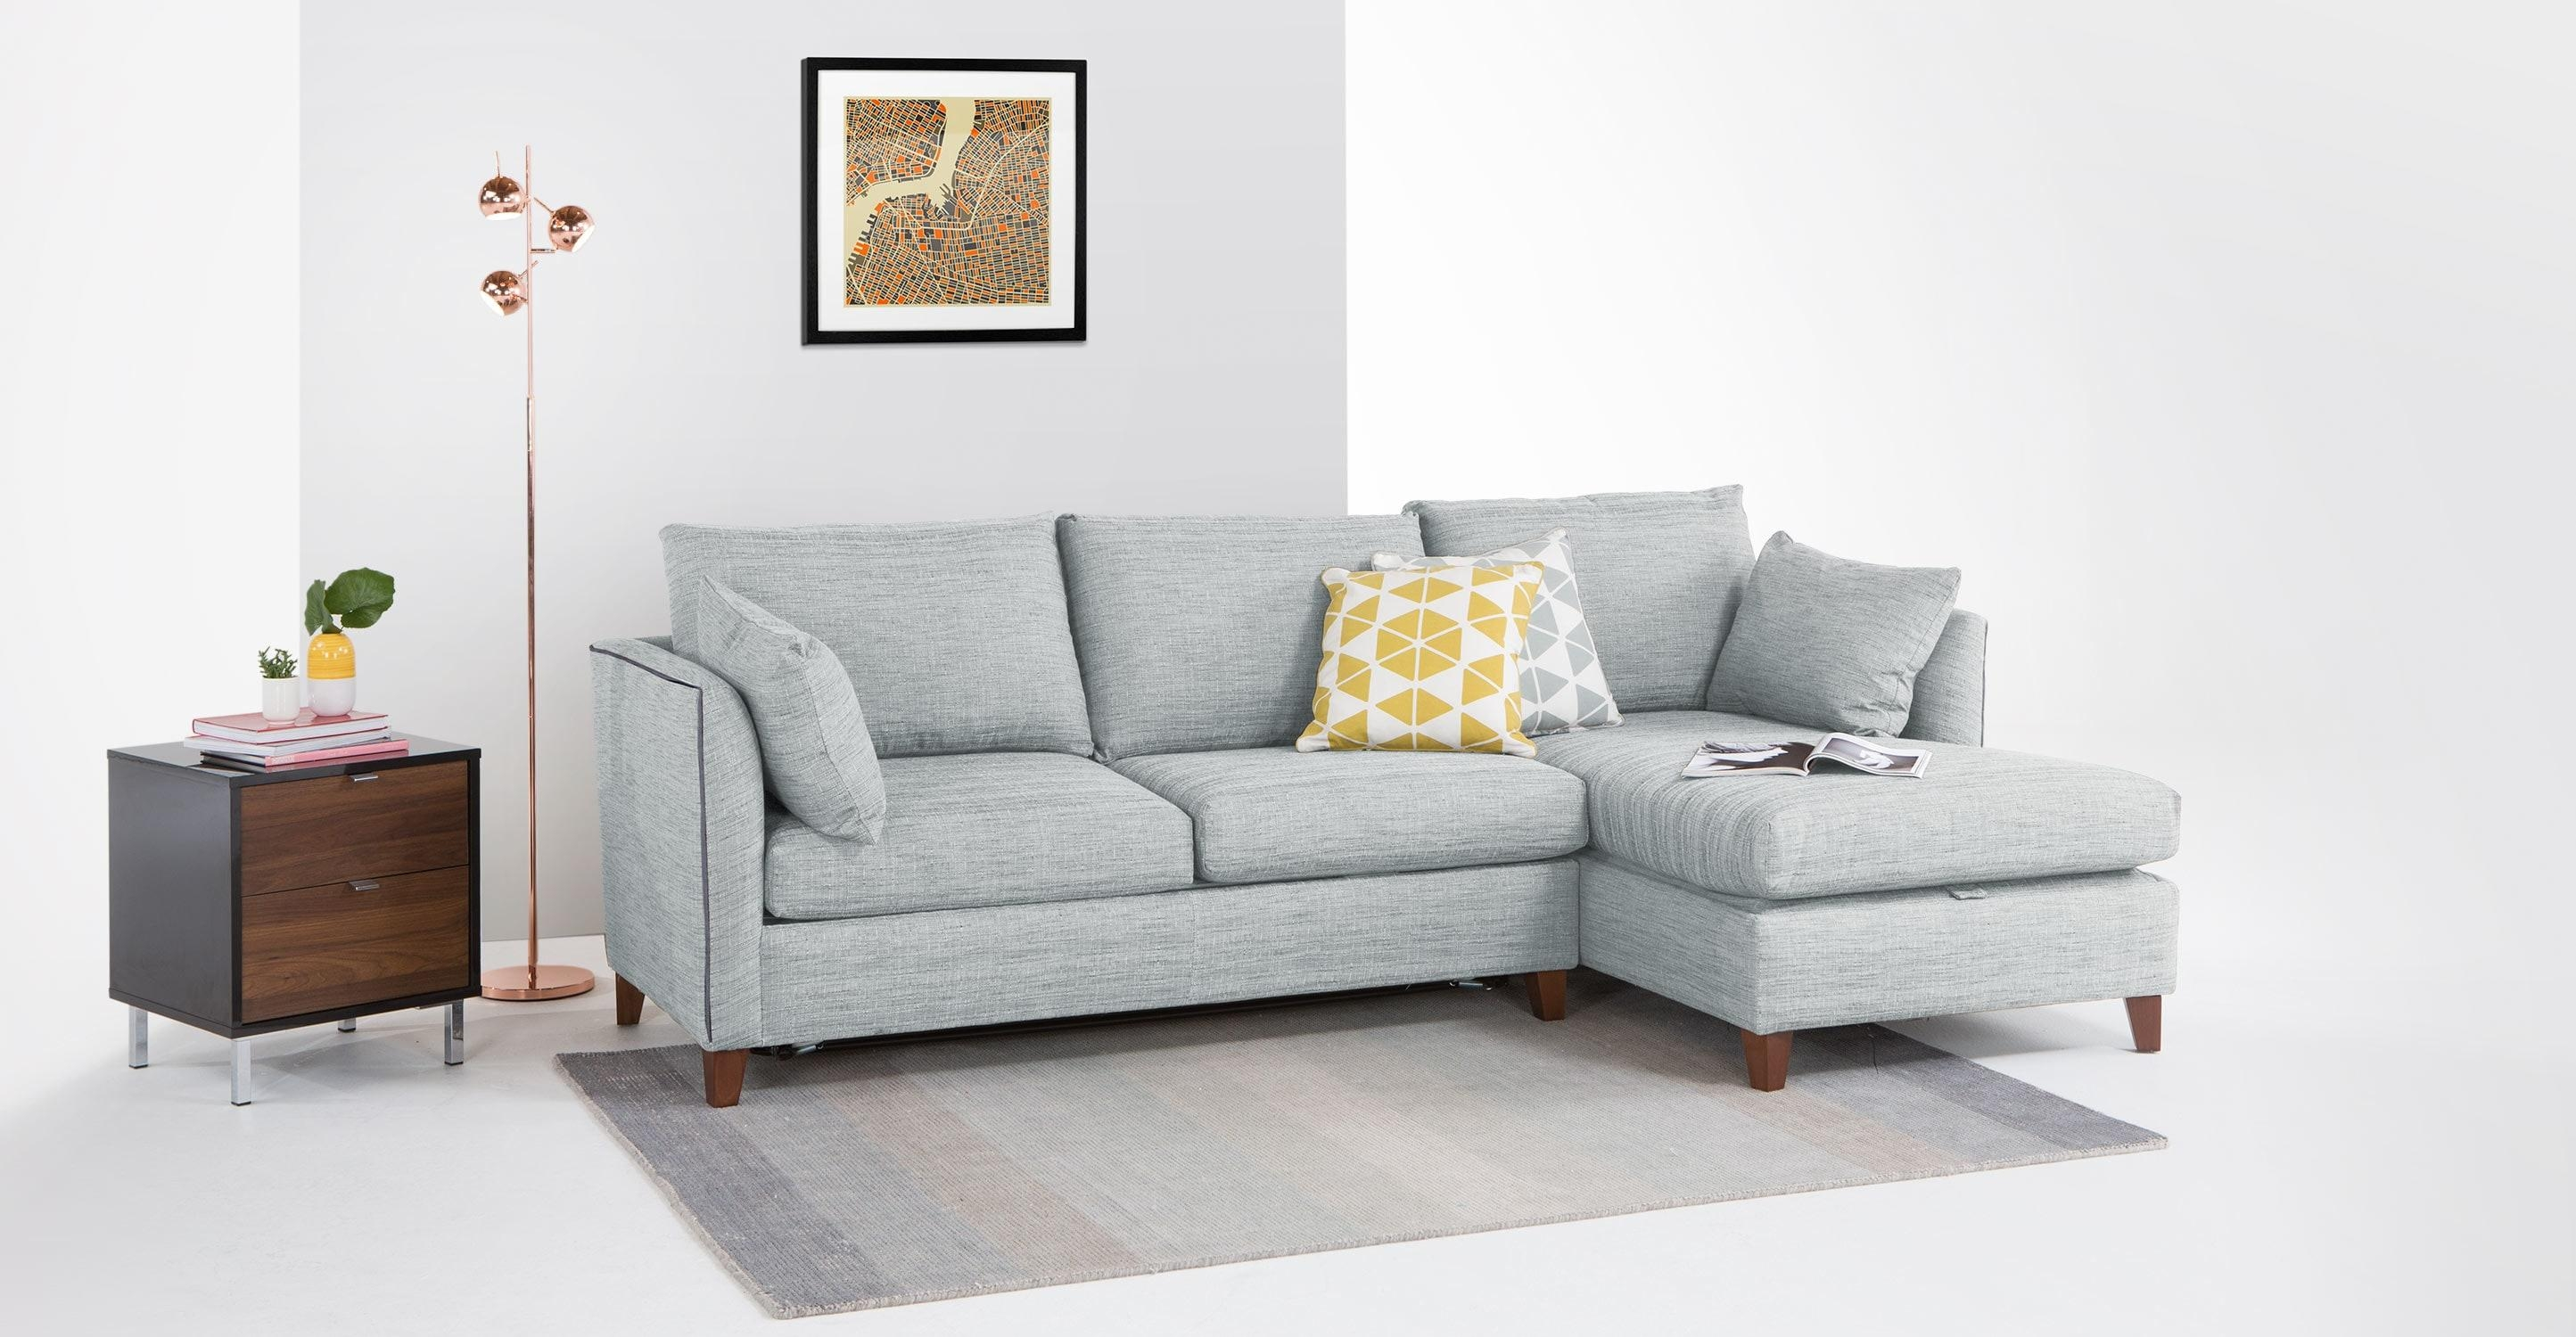 Bari Corner Storage Sofabed, Right Hand Facing, Malva Blue Grey Inside Blue Grey Sofas (Image 1 of 20)